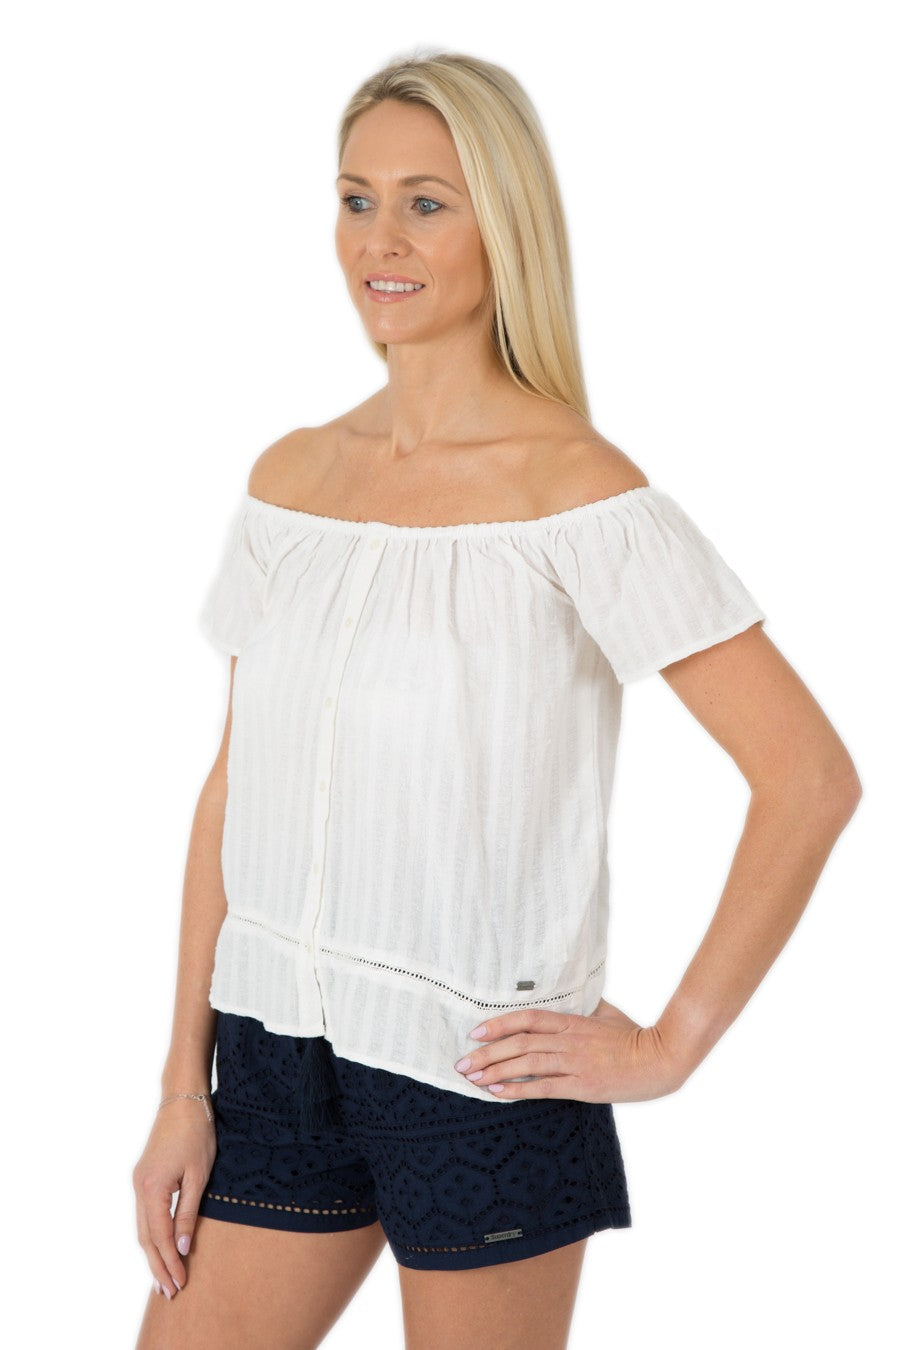 SUPERDRY MARINA BARDOT BUTTON TOP - OPTIC WHITE